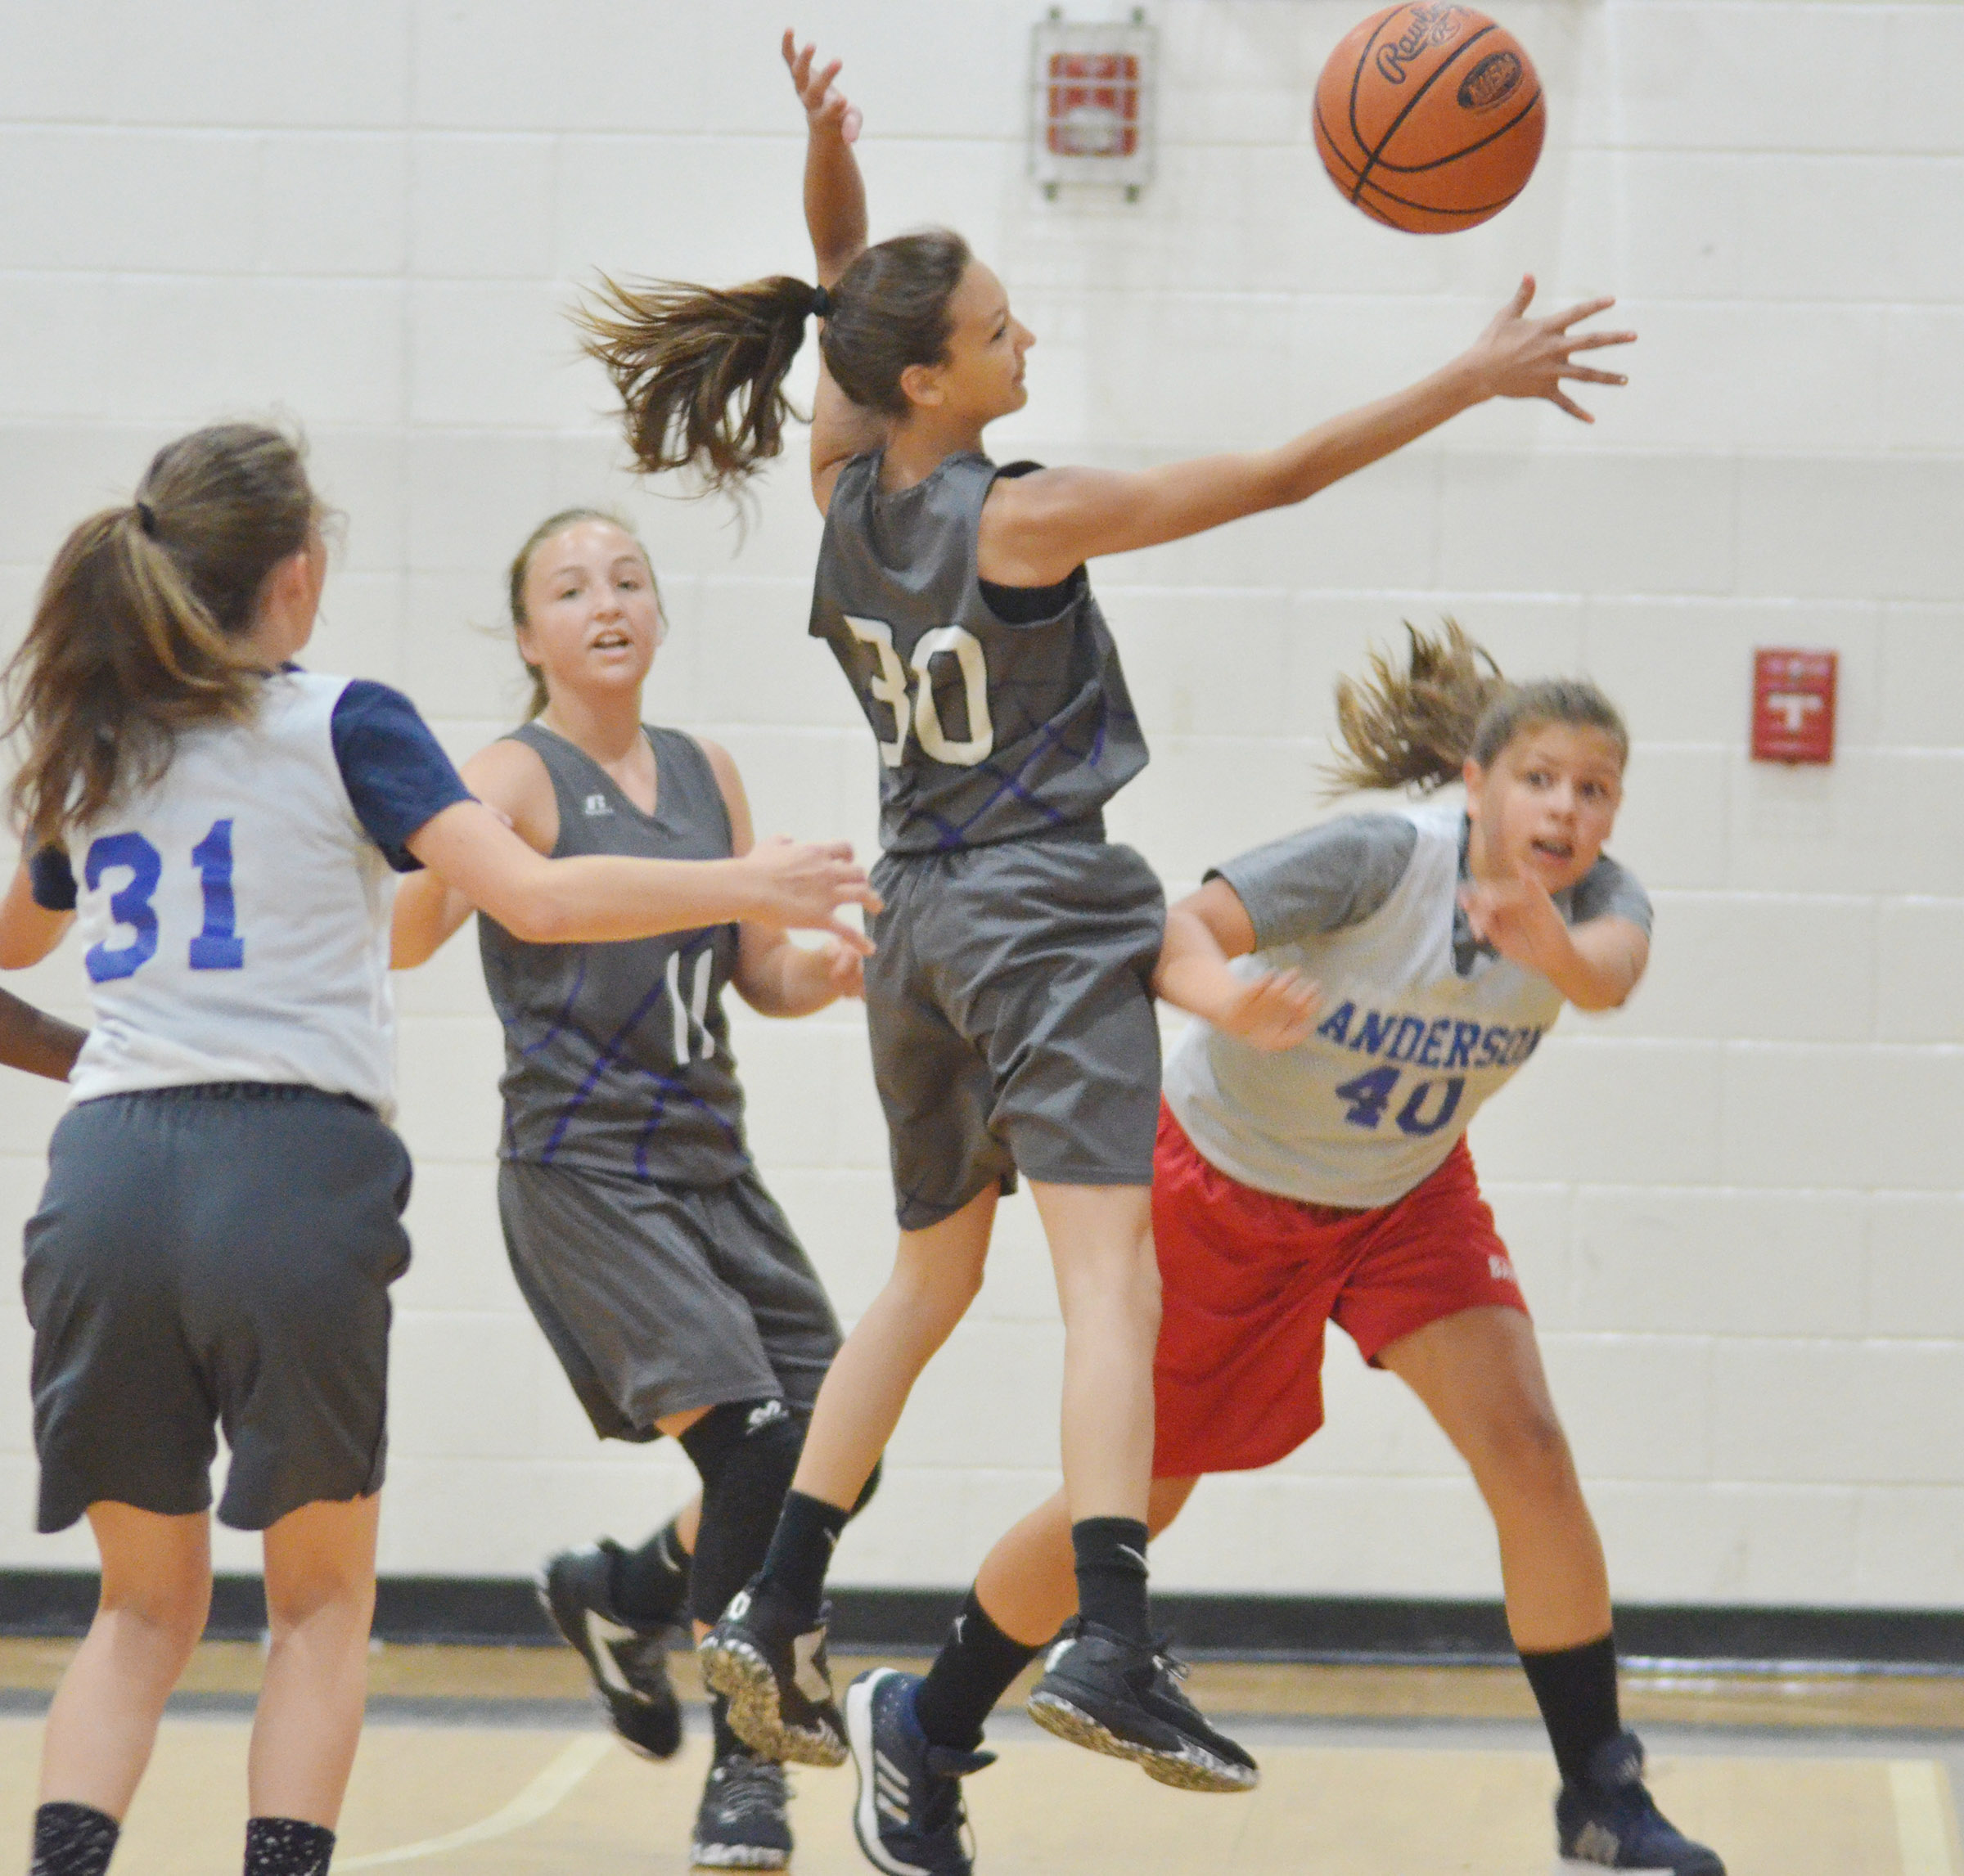 CMS seventh-grader Bri Hayes jumps for the ball.